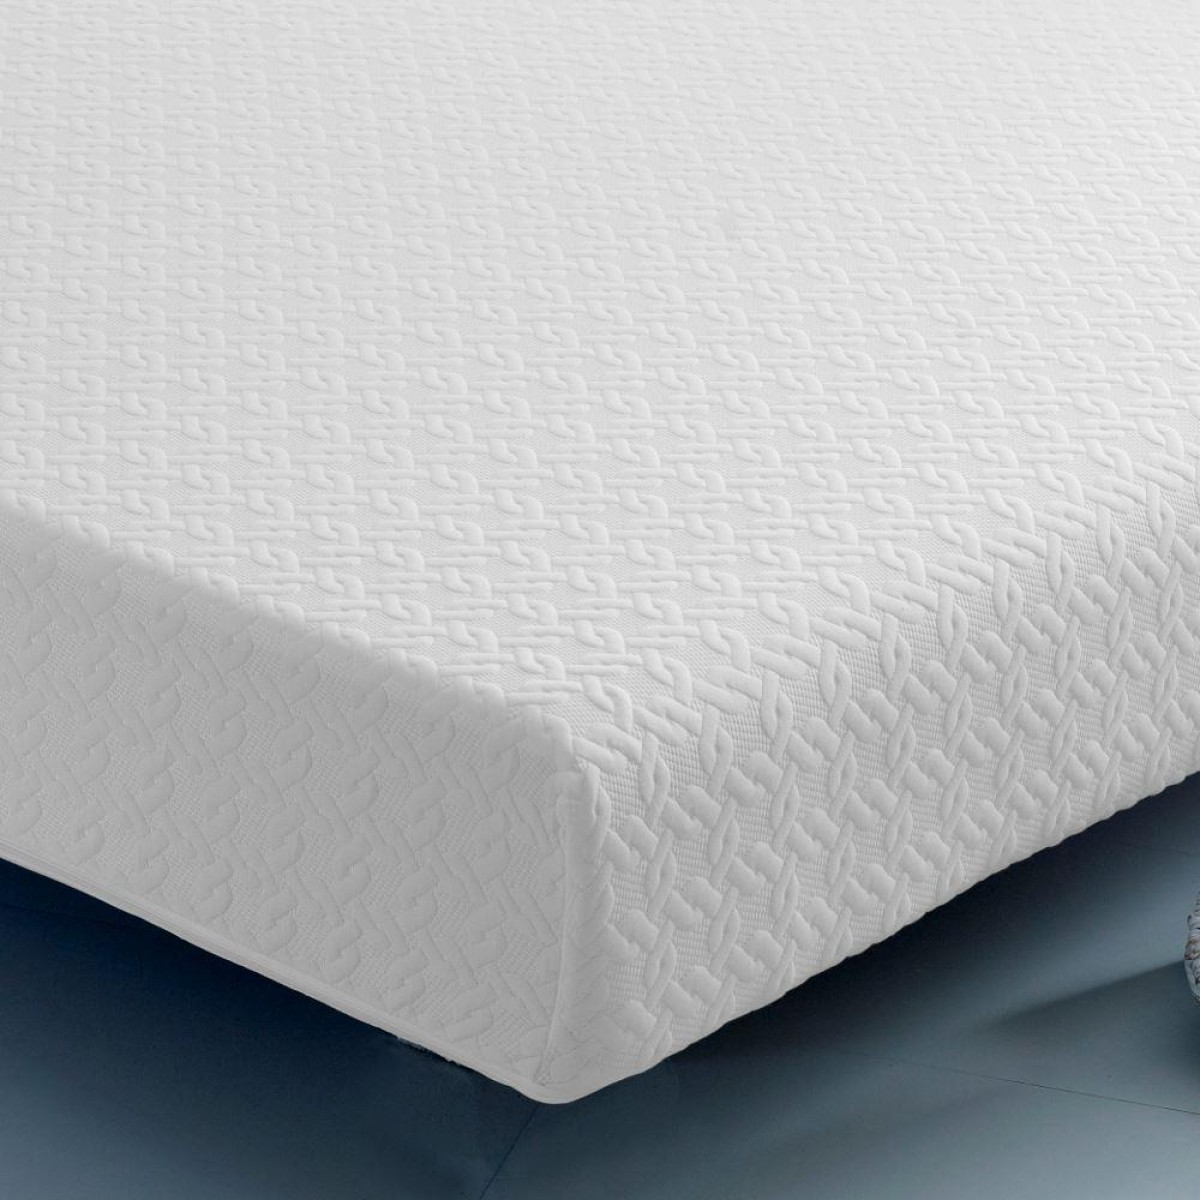 Fusion Ultra Memory and Reflex Foam Orthopaedic Mattress